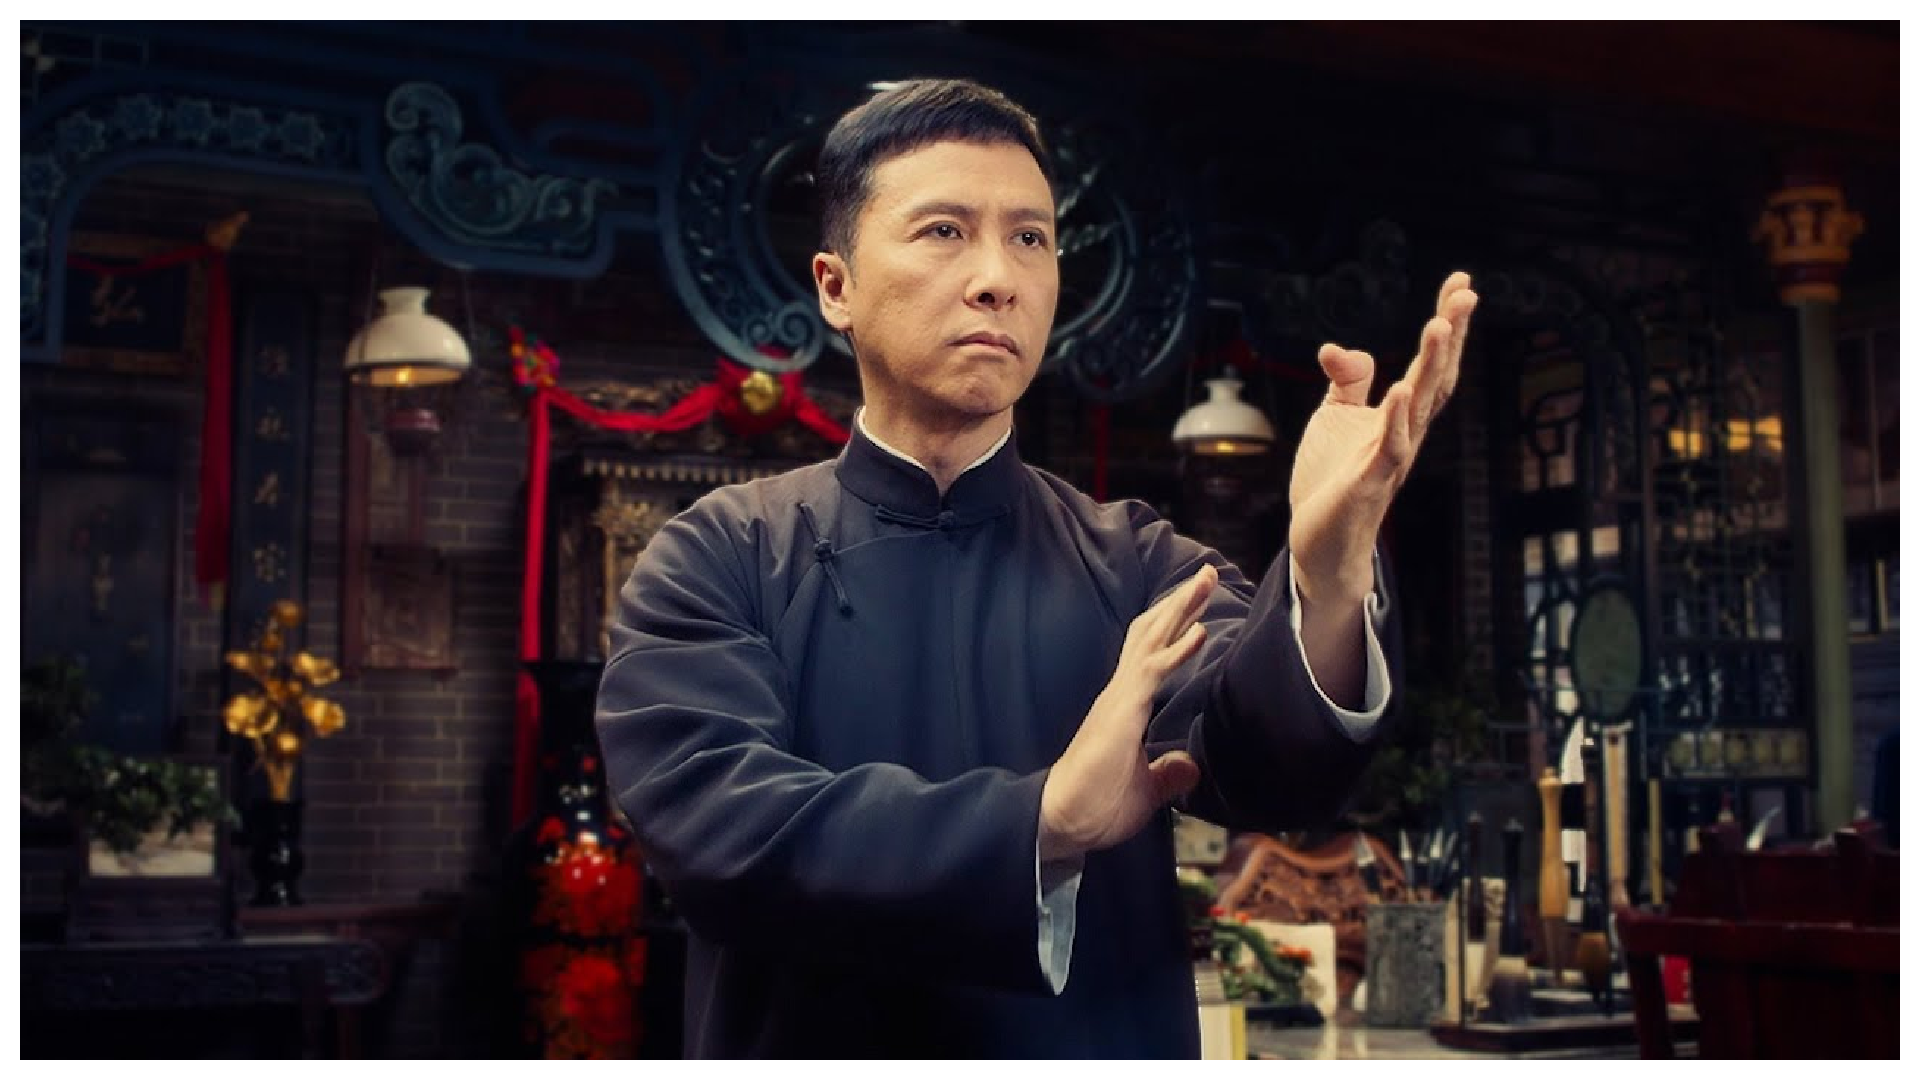 Donnie Yen joins Keanu Reeves in John Wick 4: all about the Kung-Fu master from Hong Kong